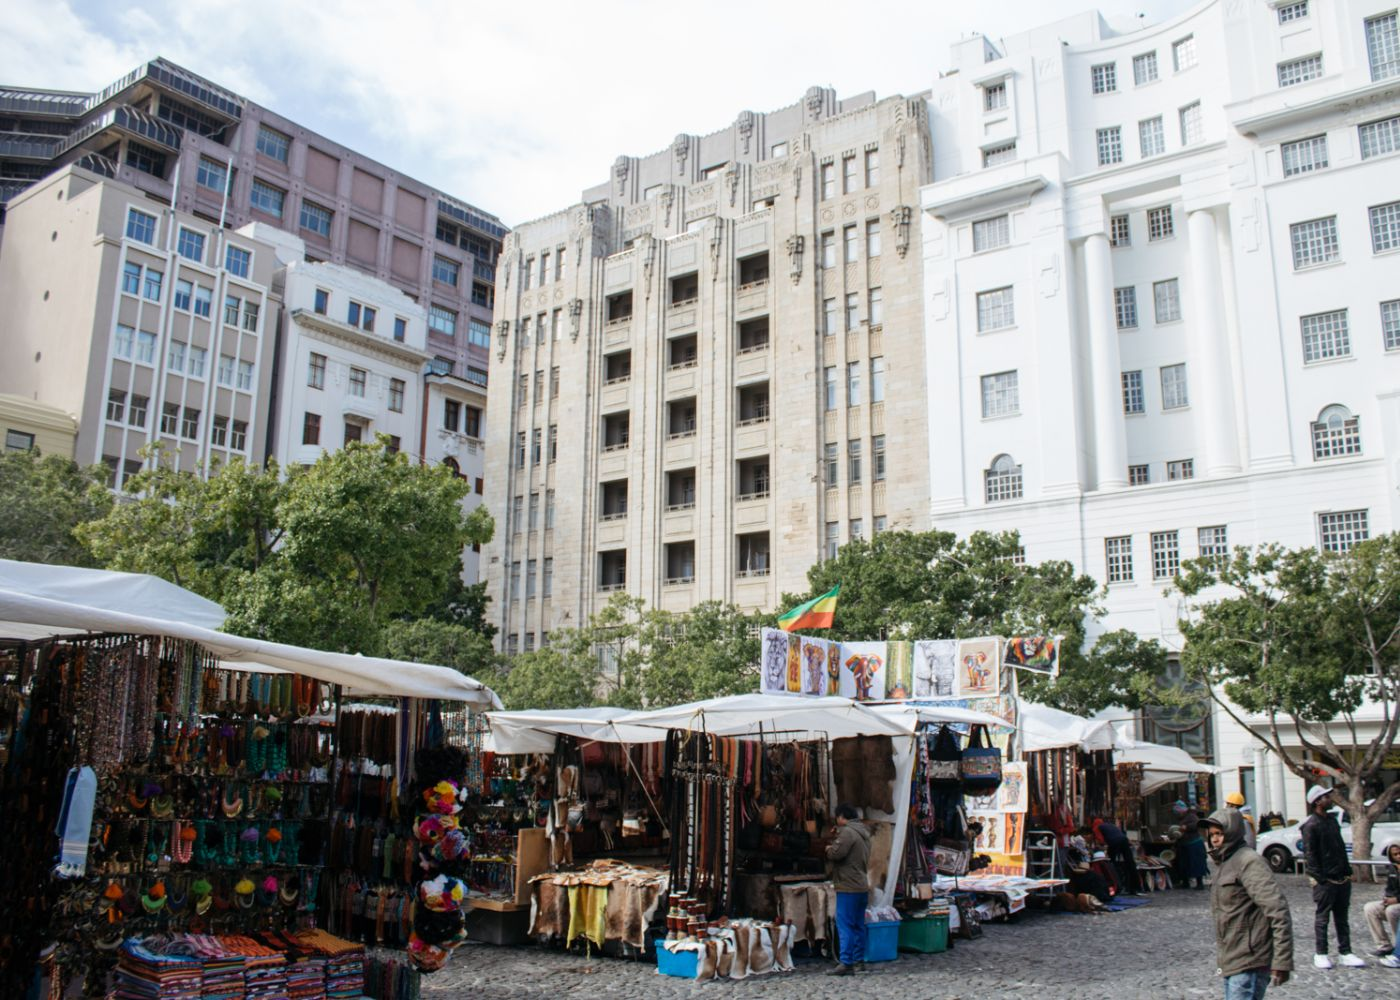 kctp00001-stafford-south-africa-cape-town-most-amazing-buildings-greenmarket-square-popular-market-for-tourists-to-visit (1)